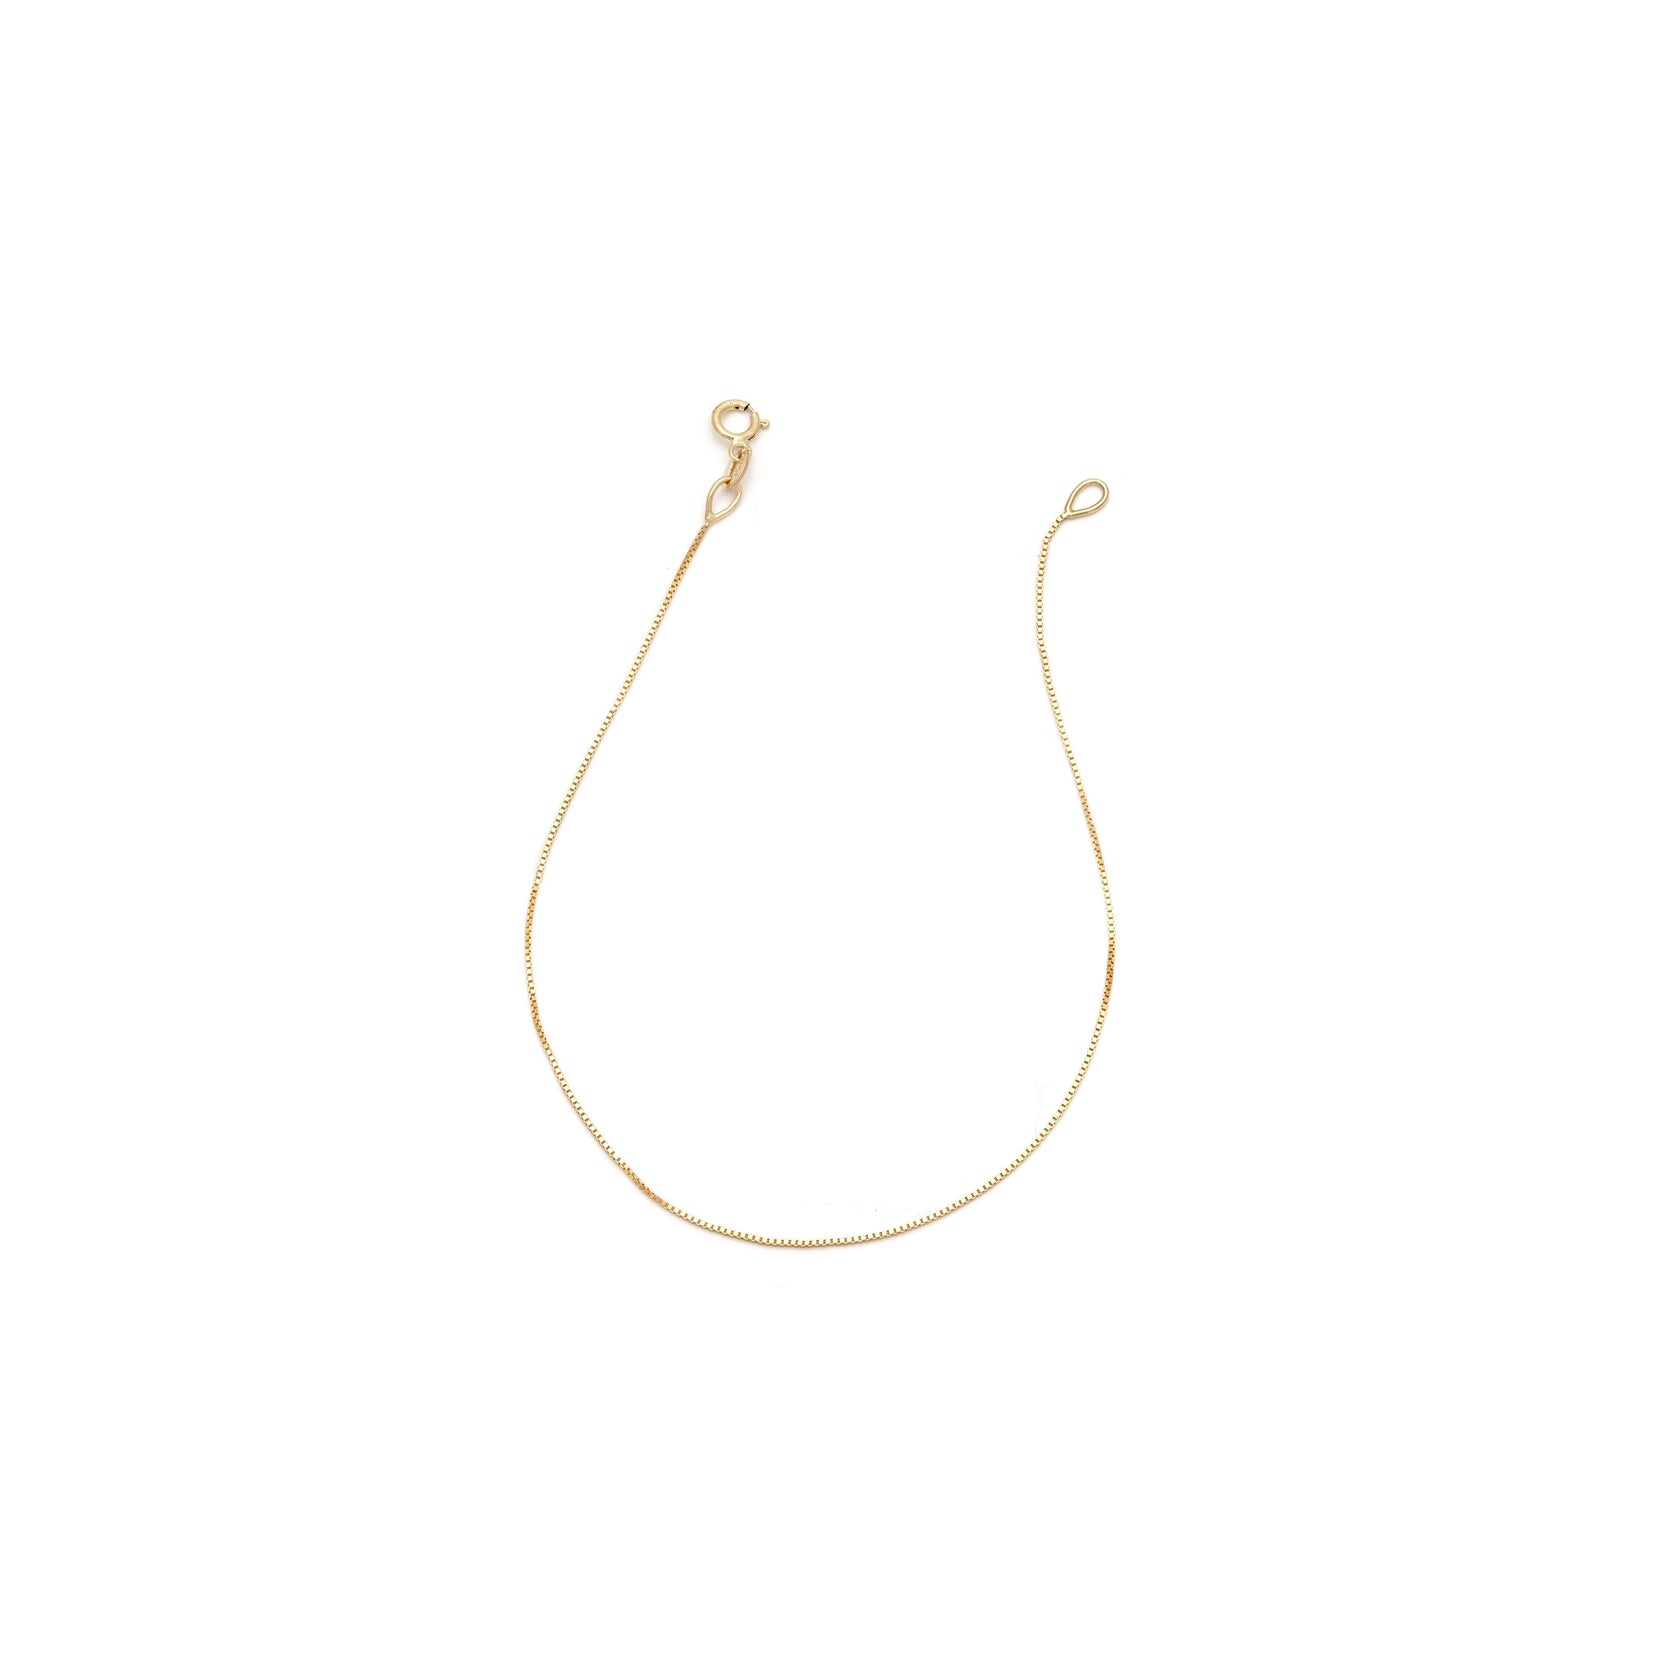 Box Chain Anklet - 10k Solid Gold